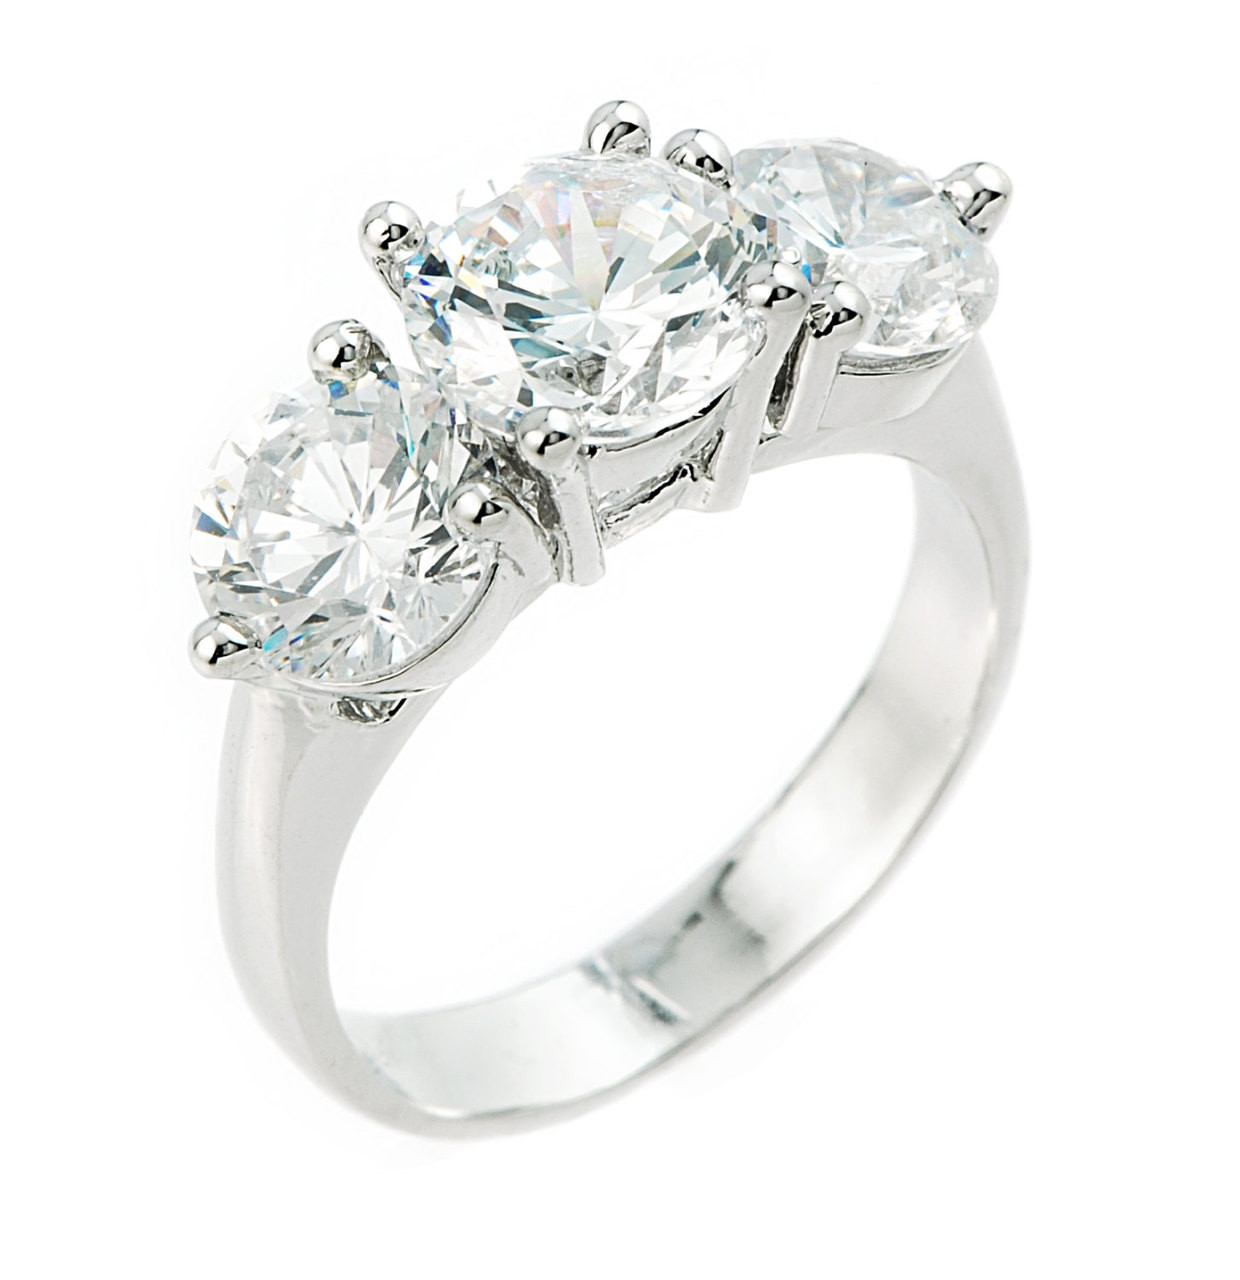 Cubic Zirconia Wedding Rings.Sterling Silver 3 Stone Cubic Zirconia Engagement Wedding Ring